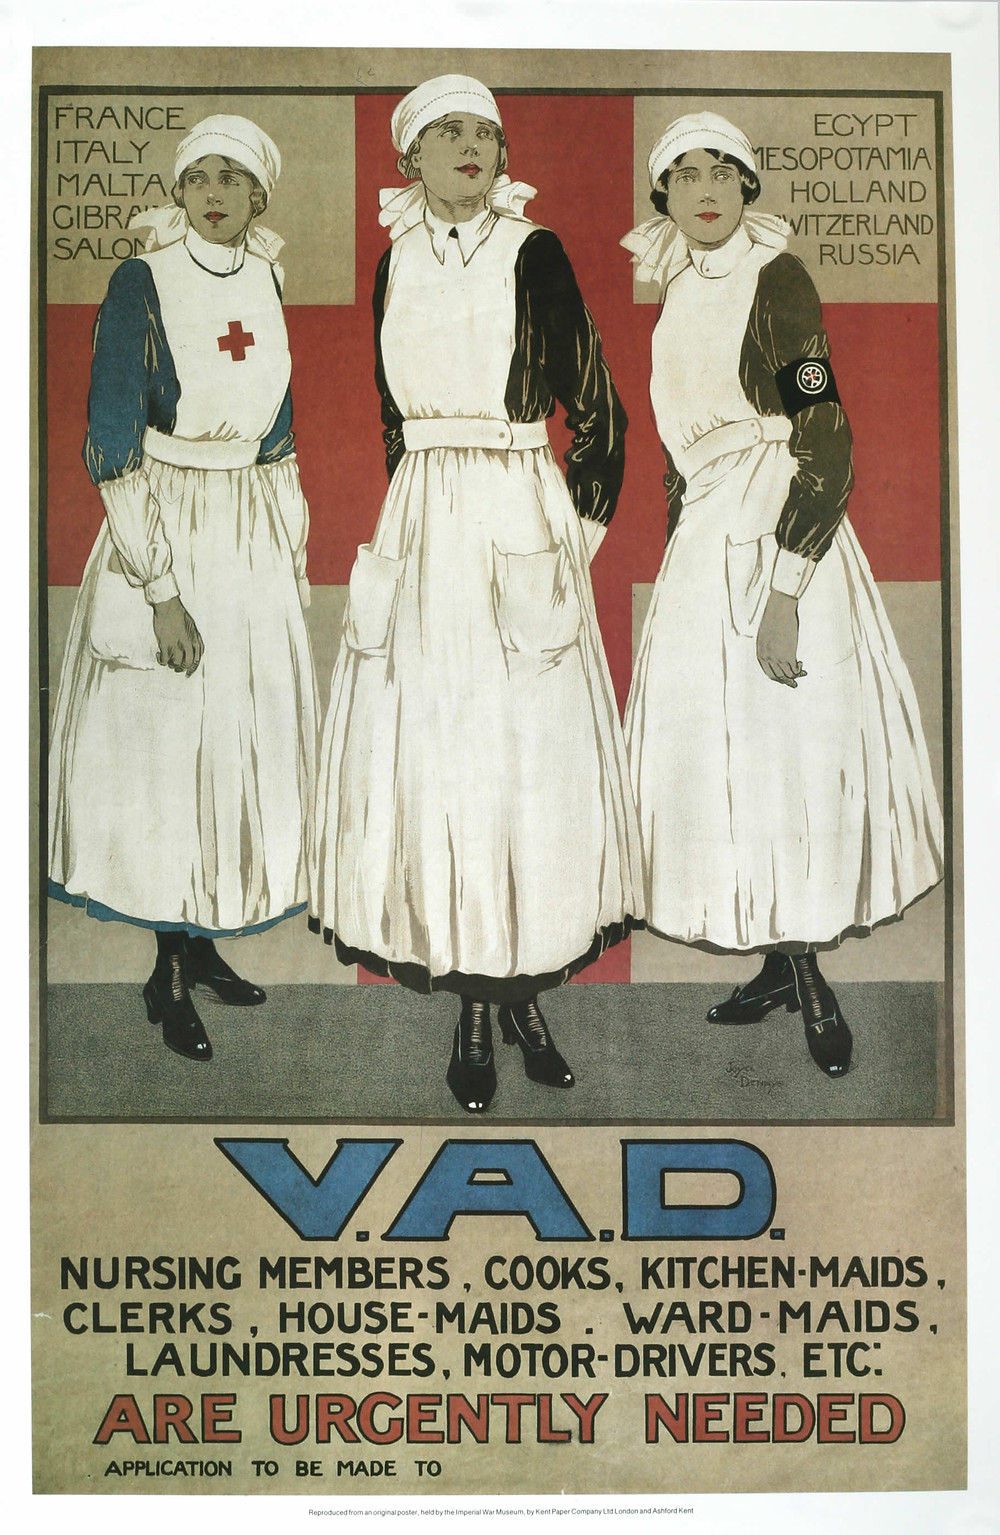 The Voluntary Aid Detachment (VAD) was founded in 1909 with the help of the Red Cross and Order of St. John. By 1914 there were over 2,500 Voluntary Aid Detachments in Britain. Of the 74,000 volunteers in 1914, two-thirds were women and girls. Female volunteers over the age of twenty-three and with more than three months' hospital experience were accepted for overseas service.